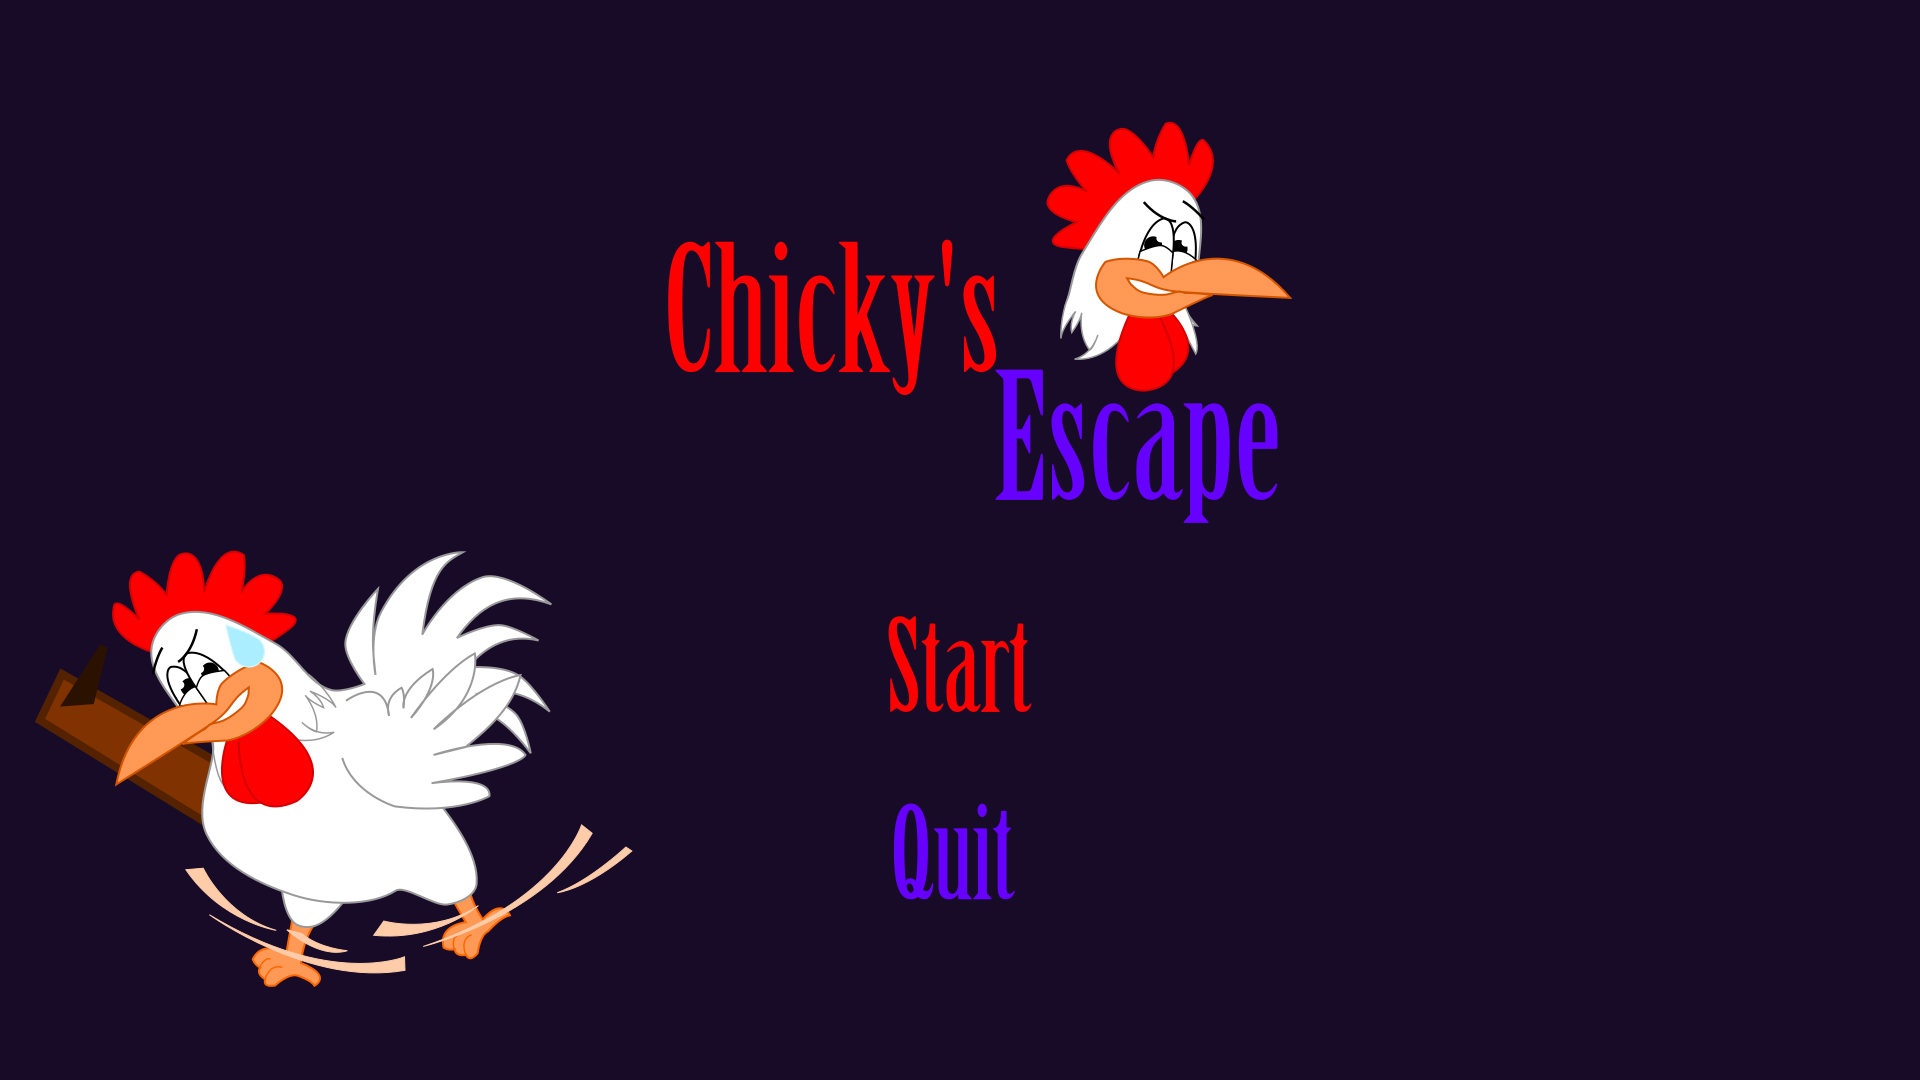 Chicky's Escape